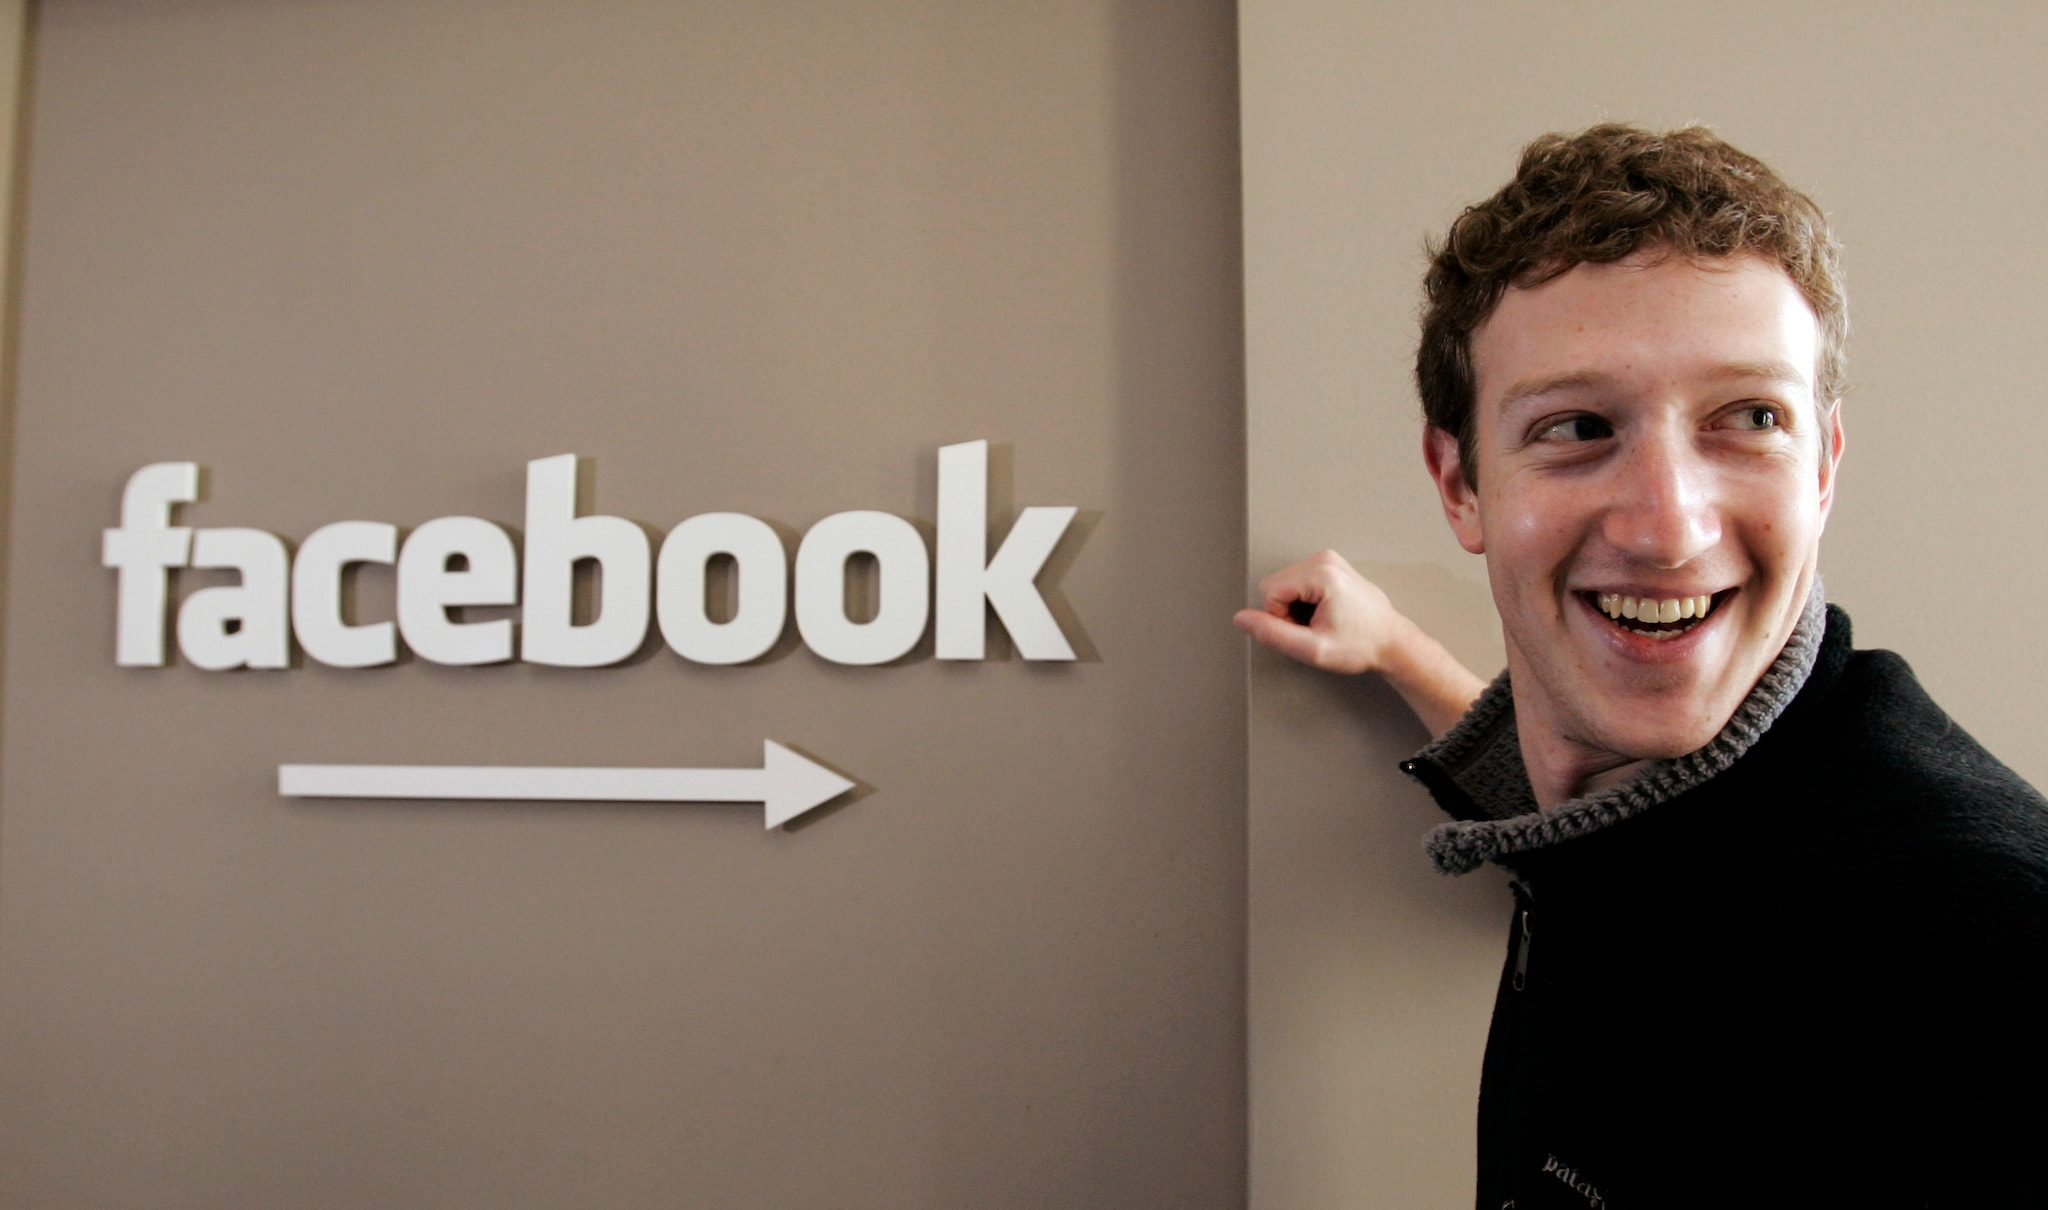 Mark Zuckerberg, the chief executive of the world's largest social media platform, Facebook, makes the list as his company is in the spotlight. Zuckerberg has found himself in a soup for the controversy surrounding the US presidential elections and the data breach by Cambridge Analytica.